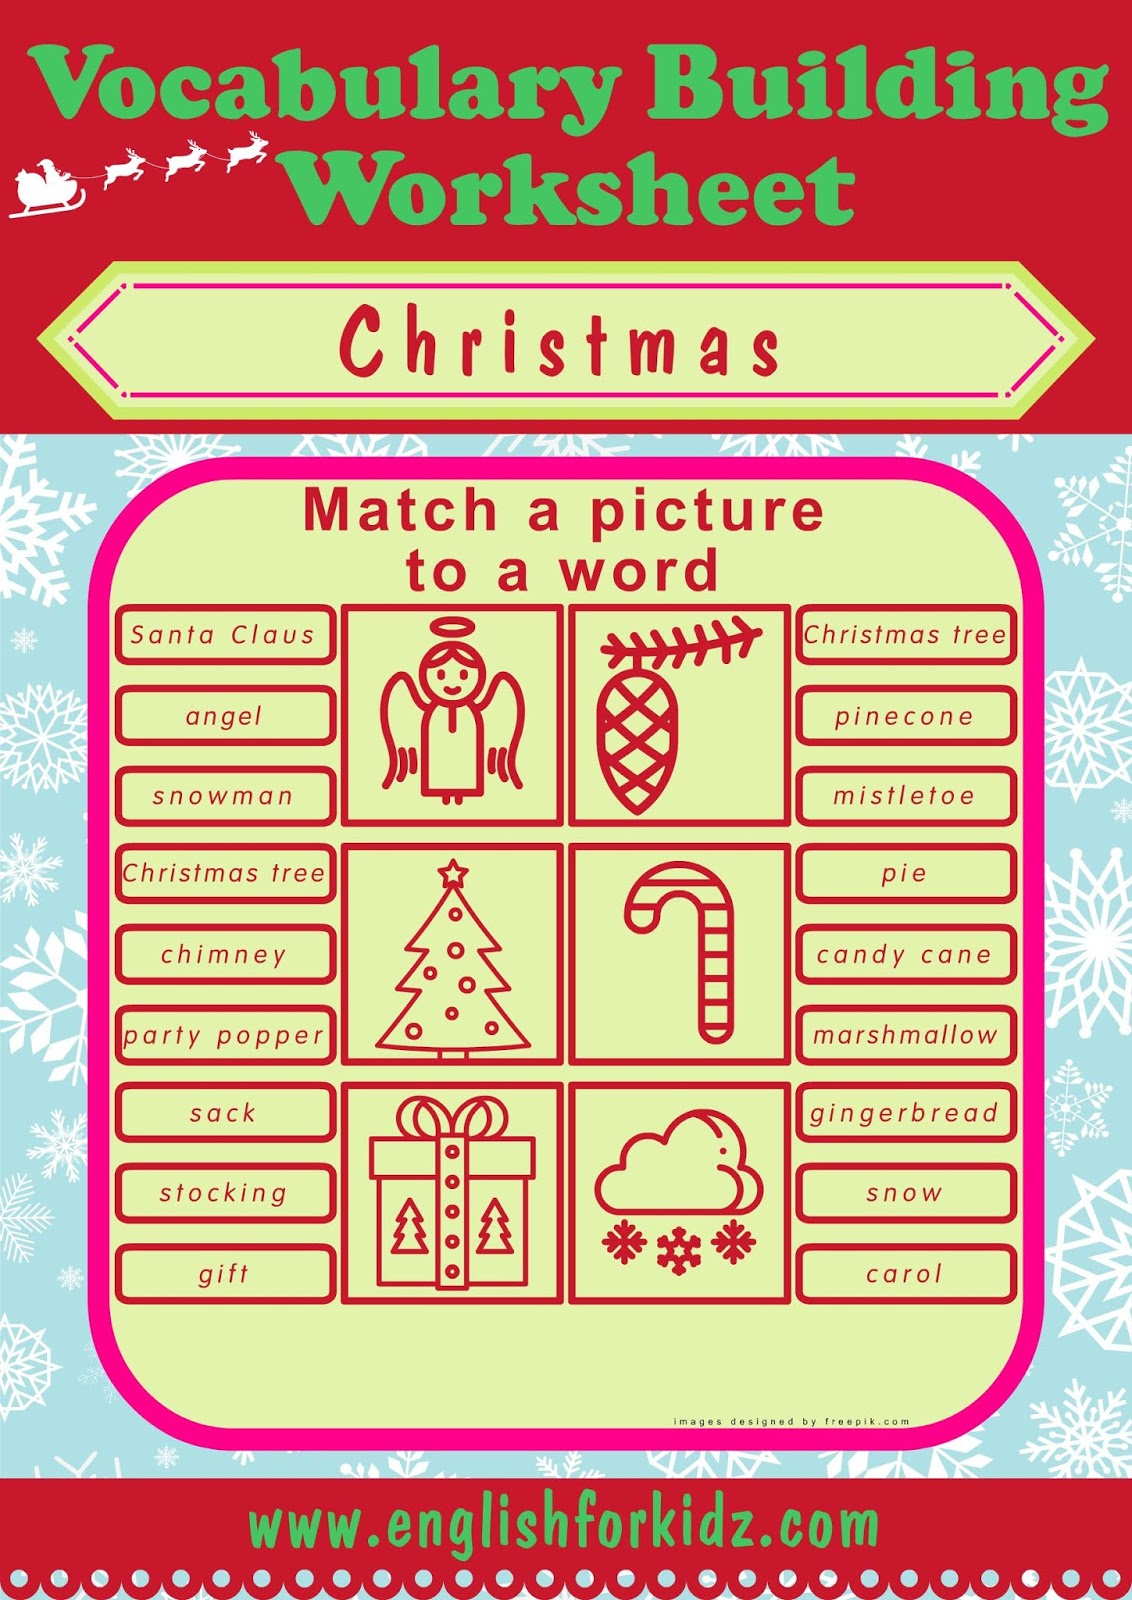 English For Kids Step By Step Christmas Worksheets